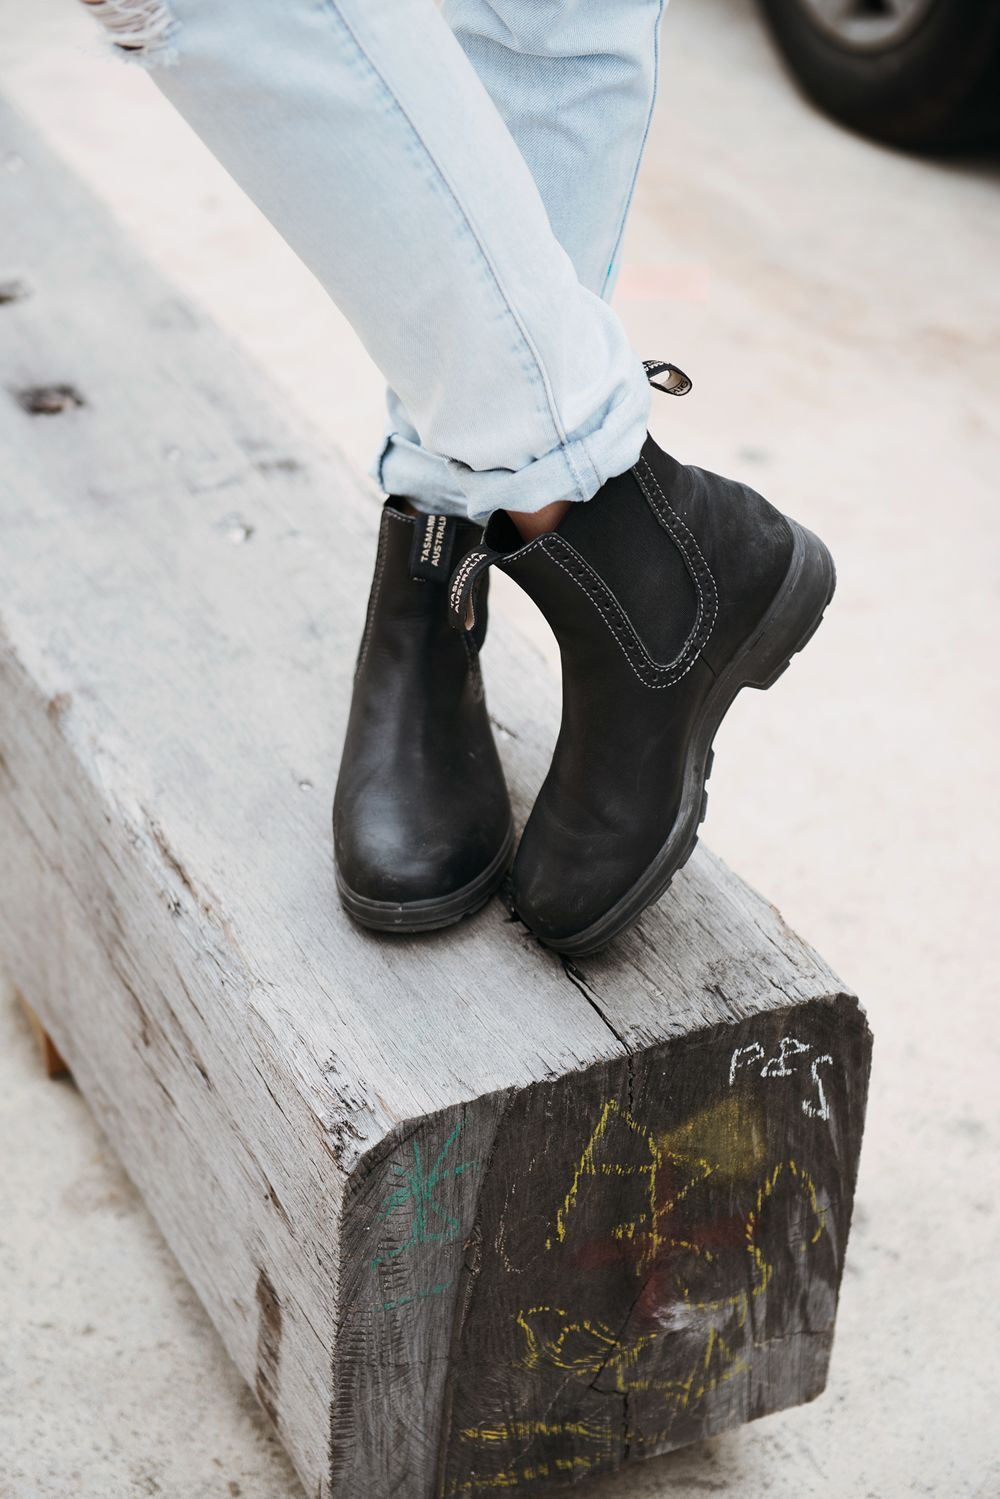 Blundstone Urbans 1448 Is A Women S Tall Elastic Sided Leather Boot In A Classic Voltan Black Colour Made Using Blundstone Boots Women Boots Blundstone Boots